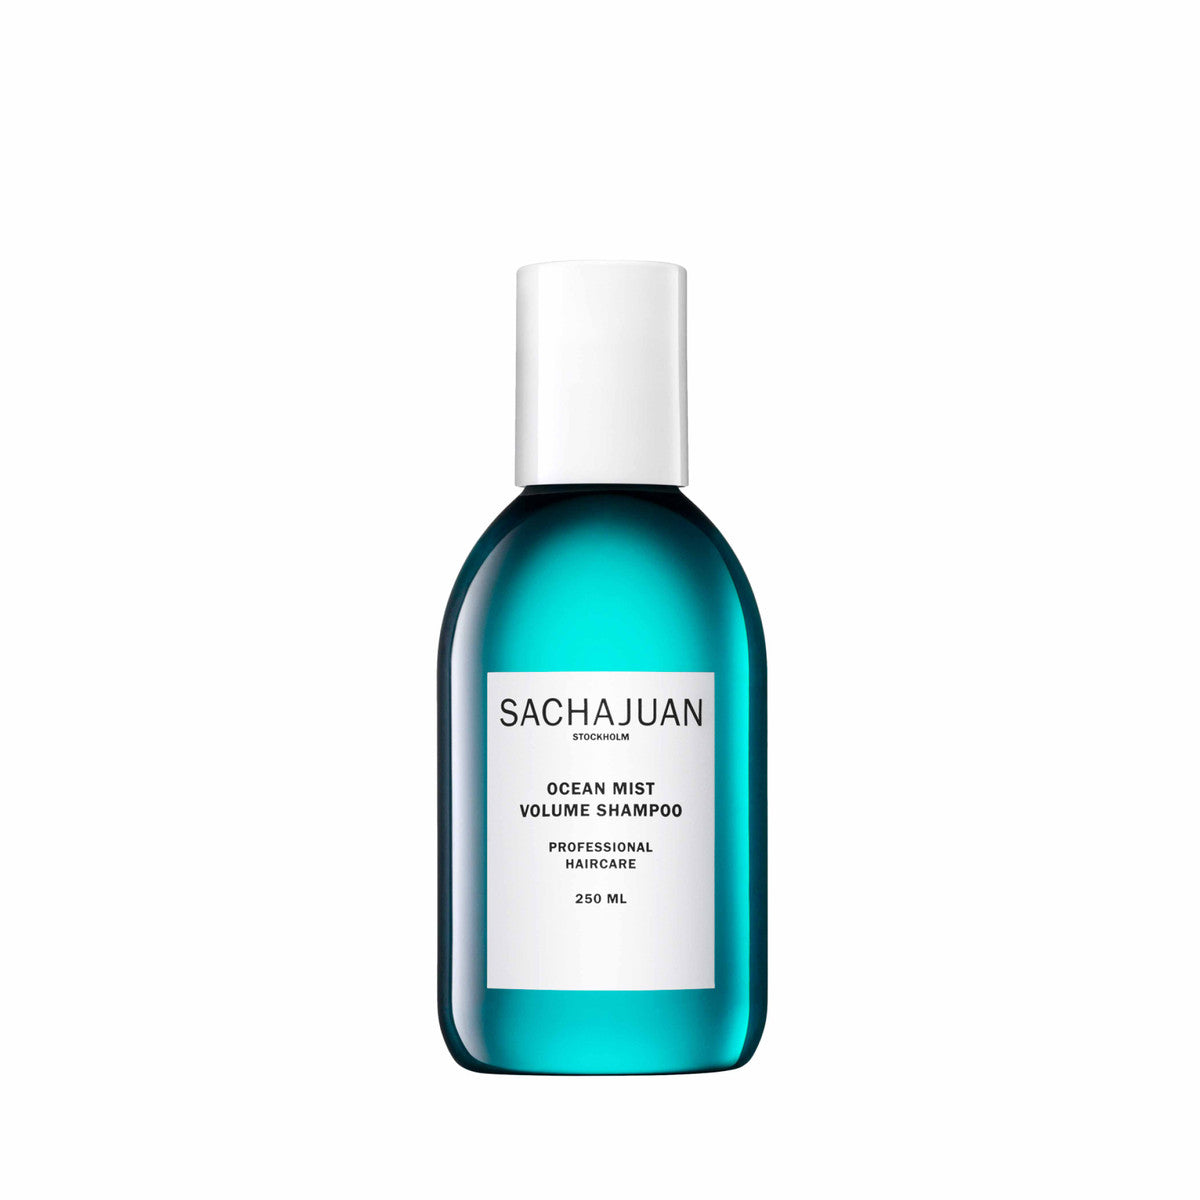 SACHAJUAN Ocean Mist Volume Shampoo 250 ml - Brazilian Soul Beauty SACHAJUAN - Brazilian Soul Beauty